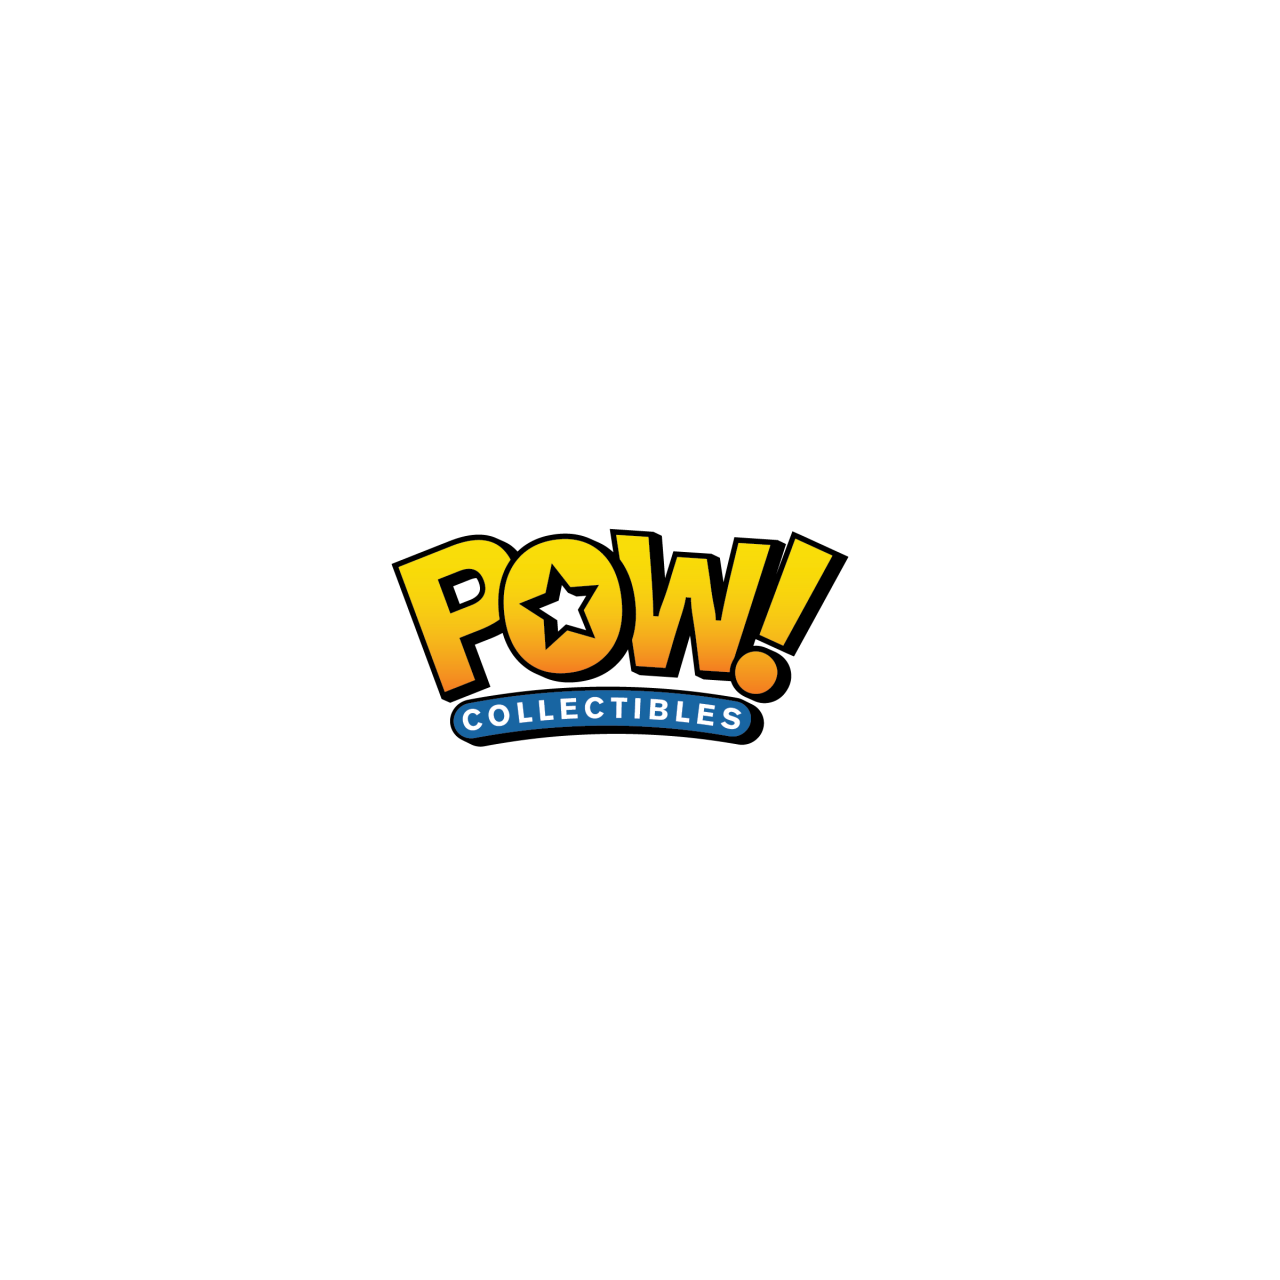 Image of Pow Collectibles logo